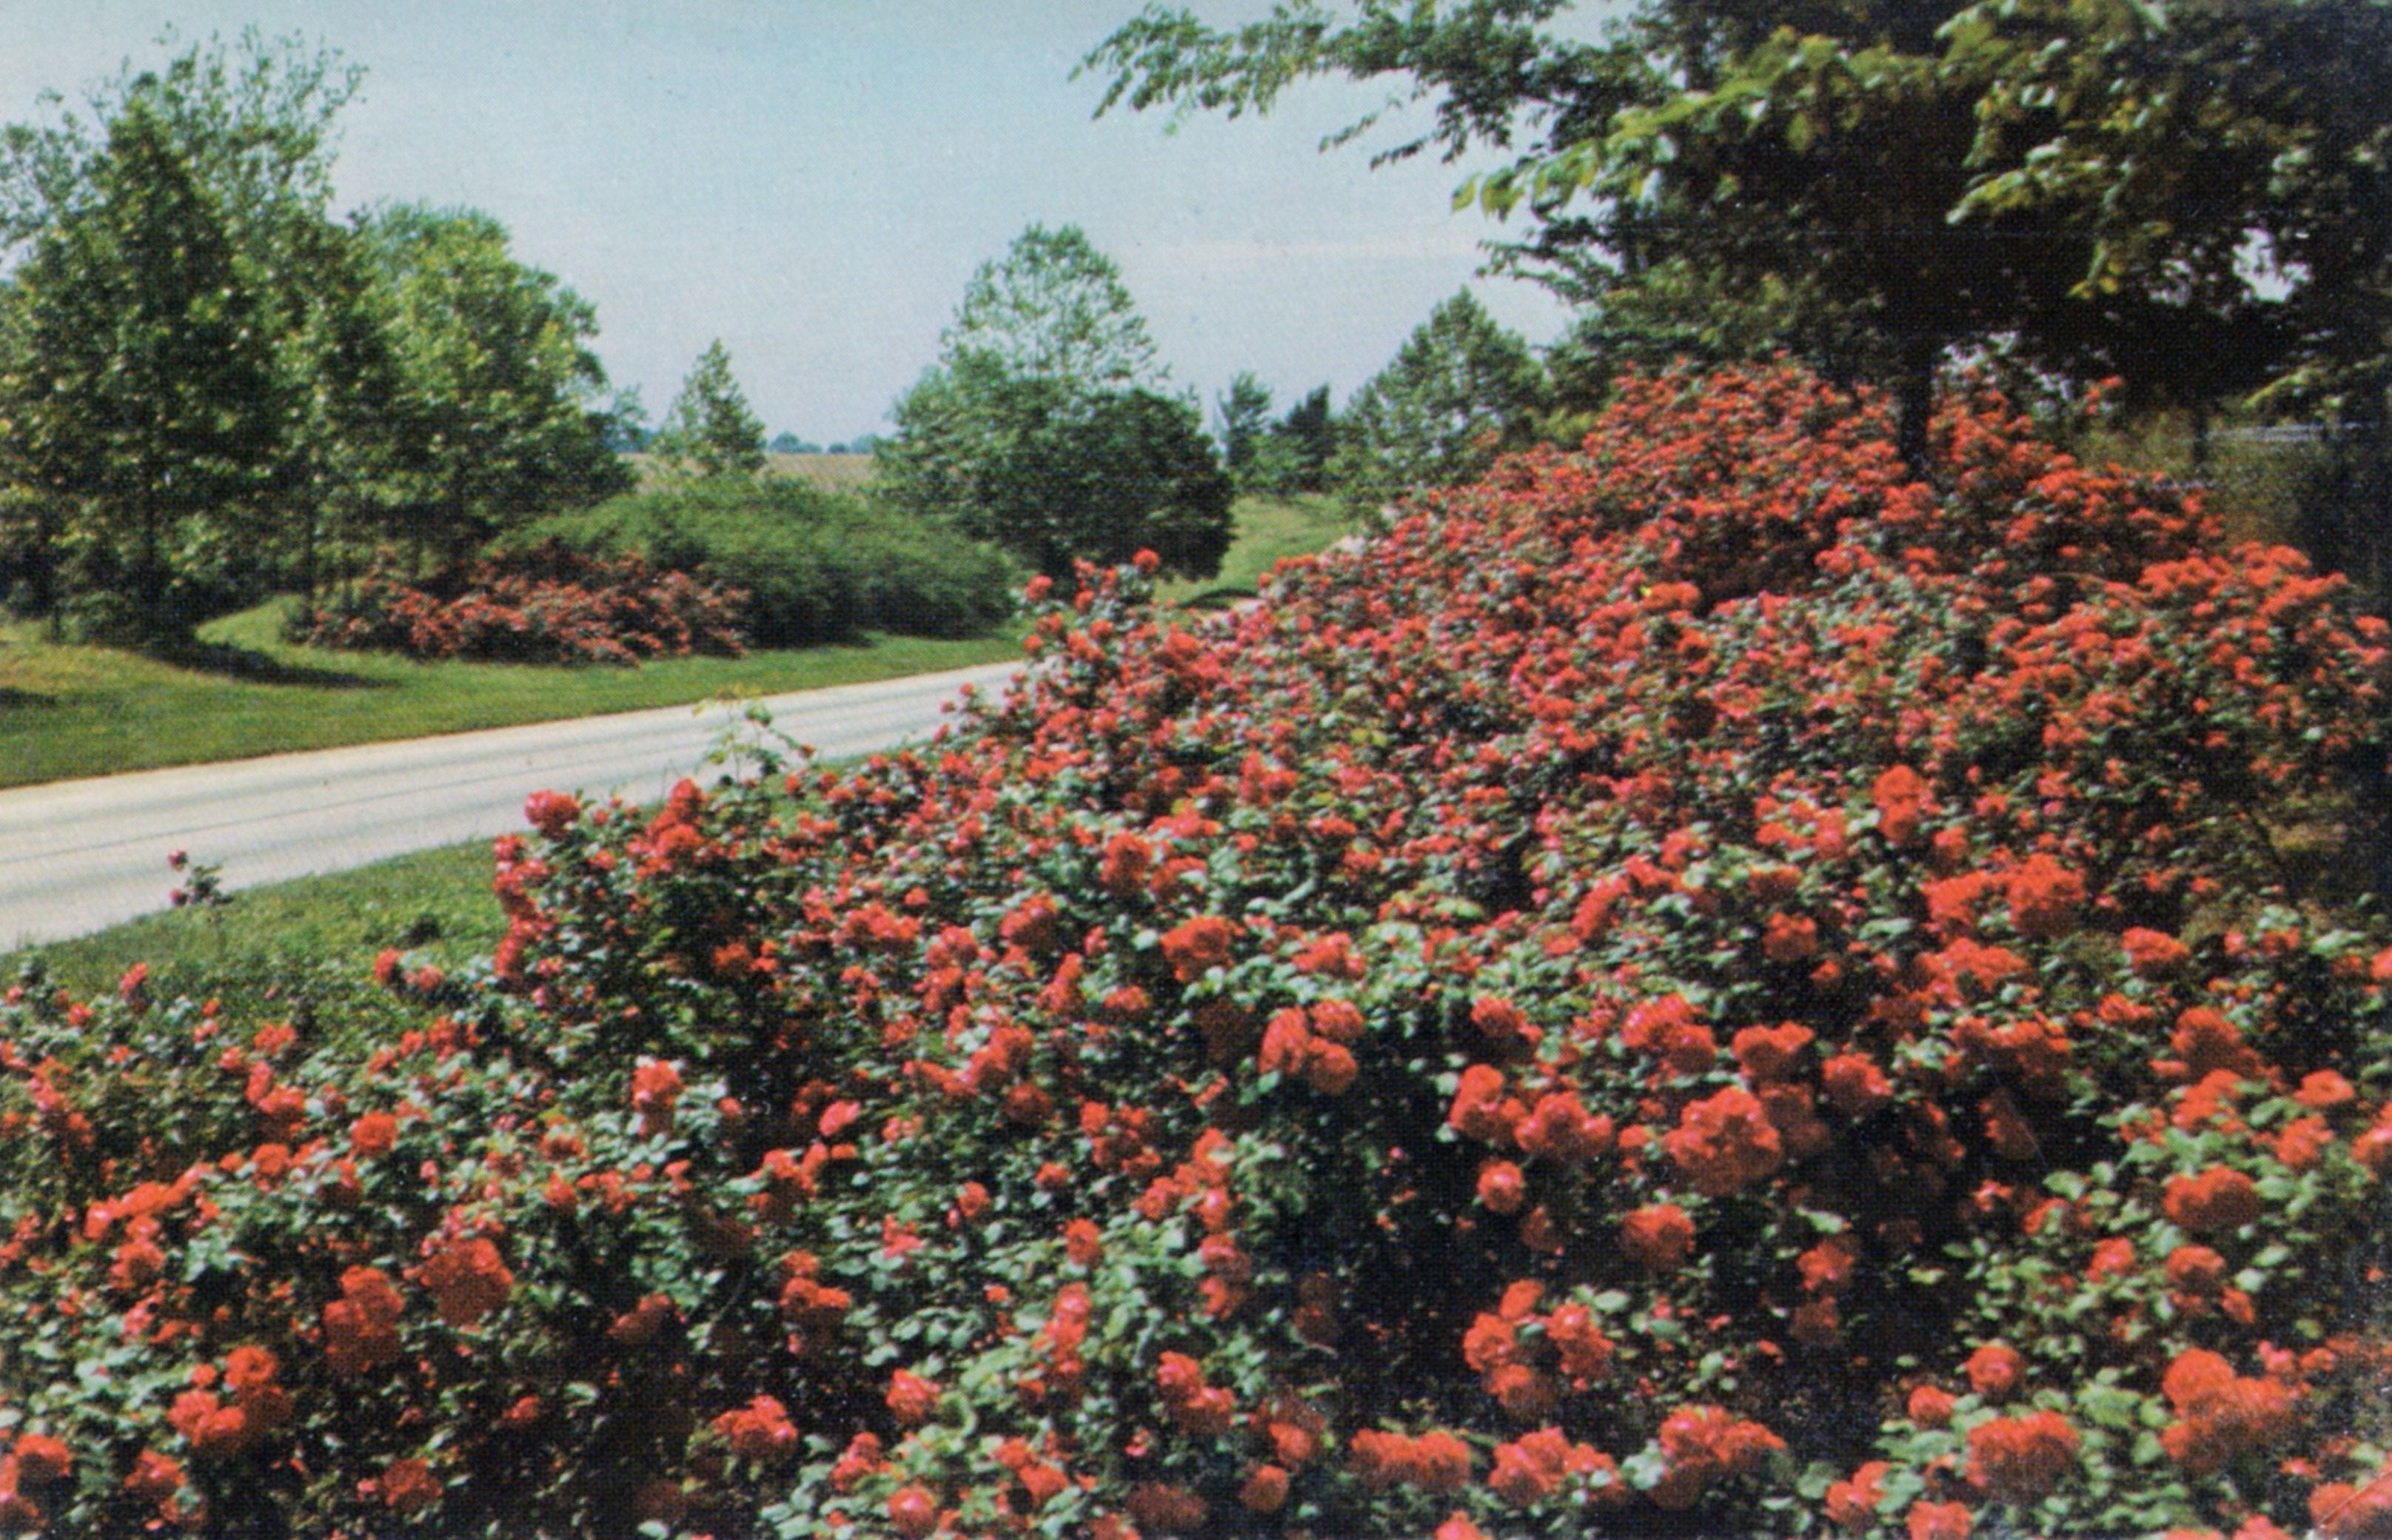 Ten mile rose garden on US 61, between Cape Girardeau and Jackson ...